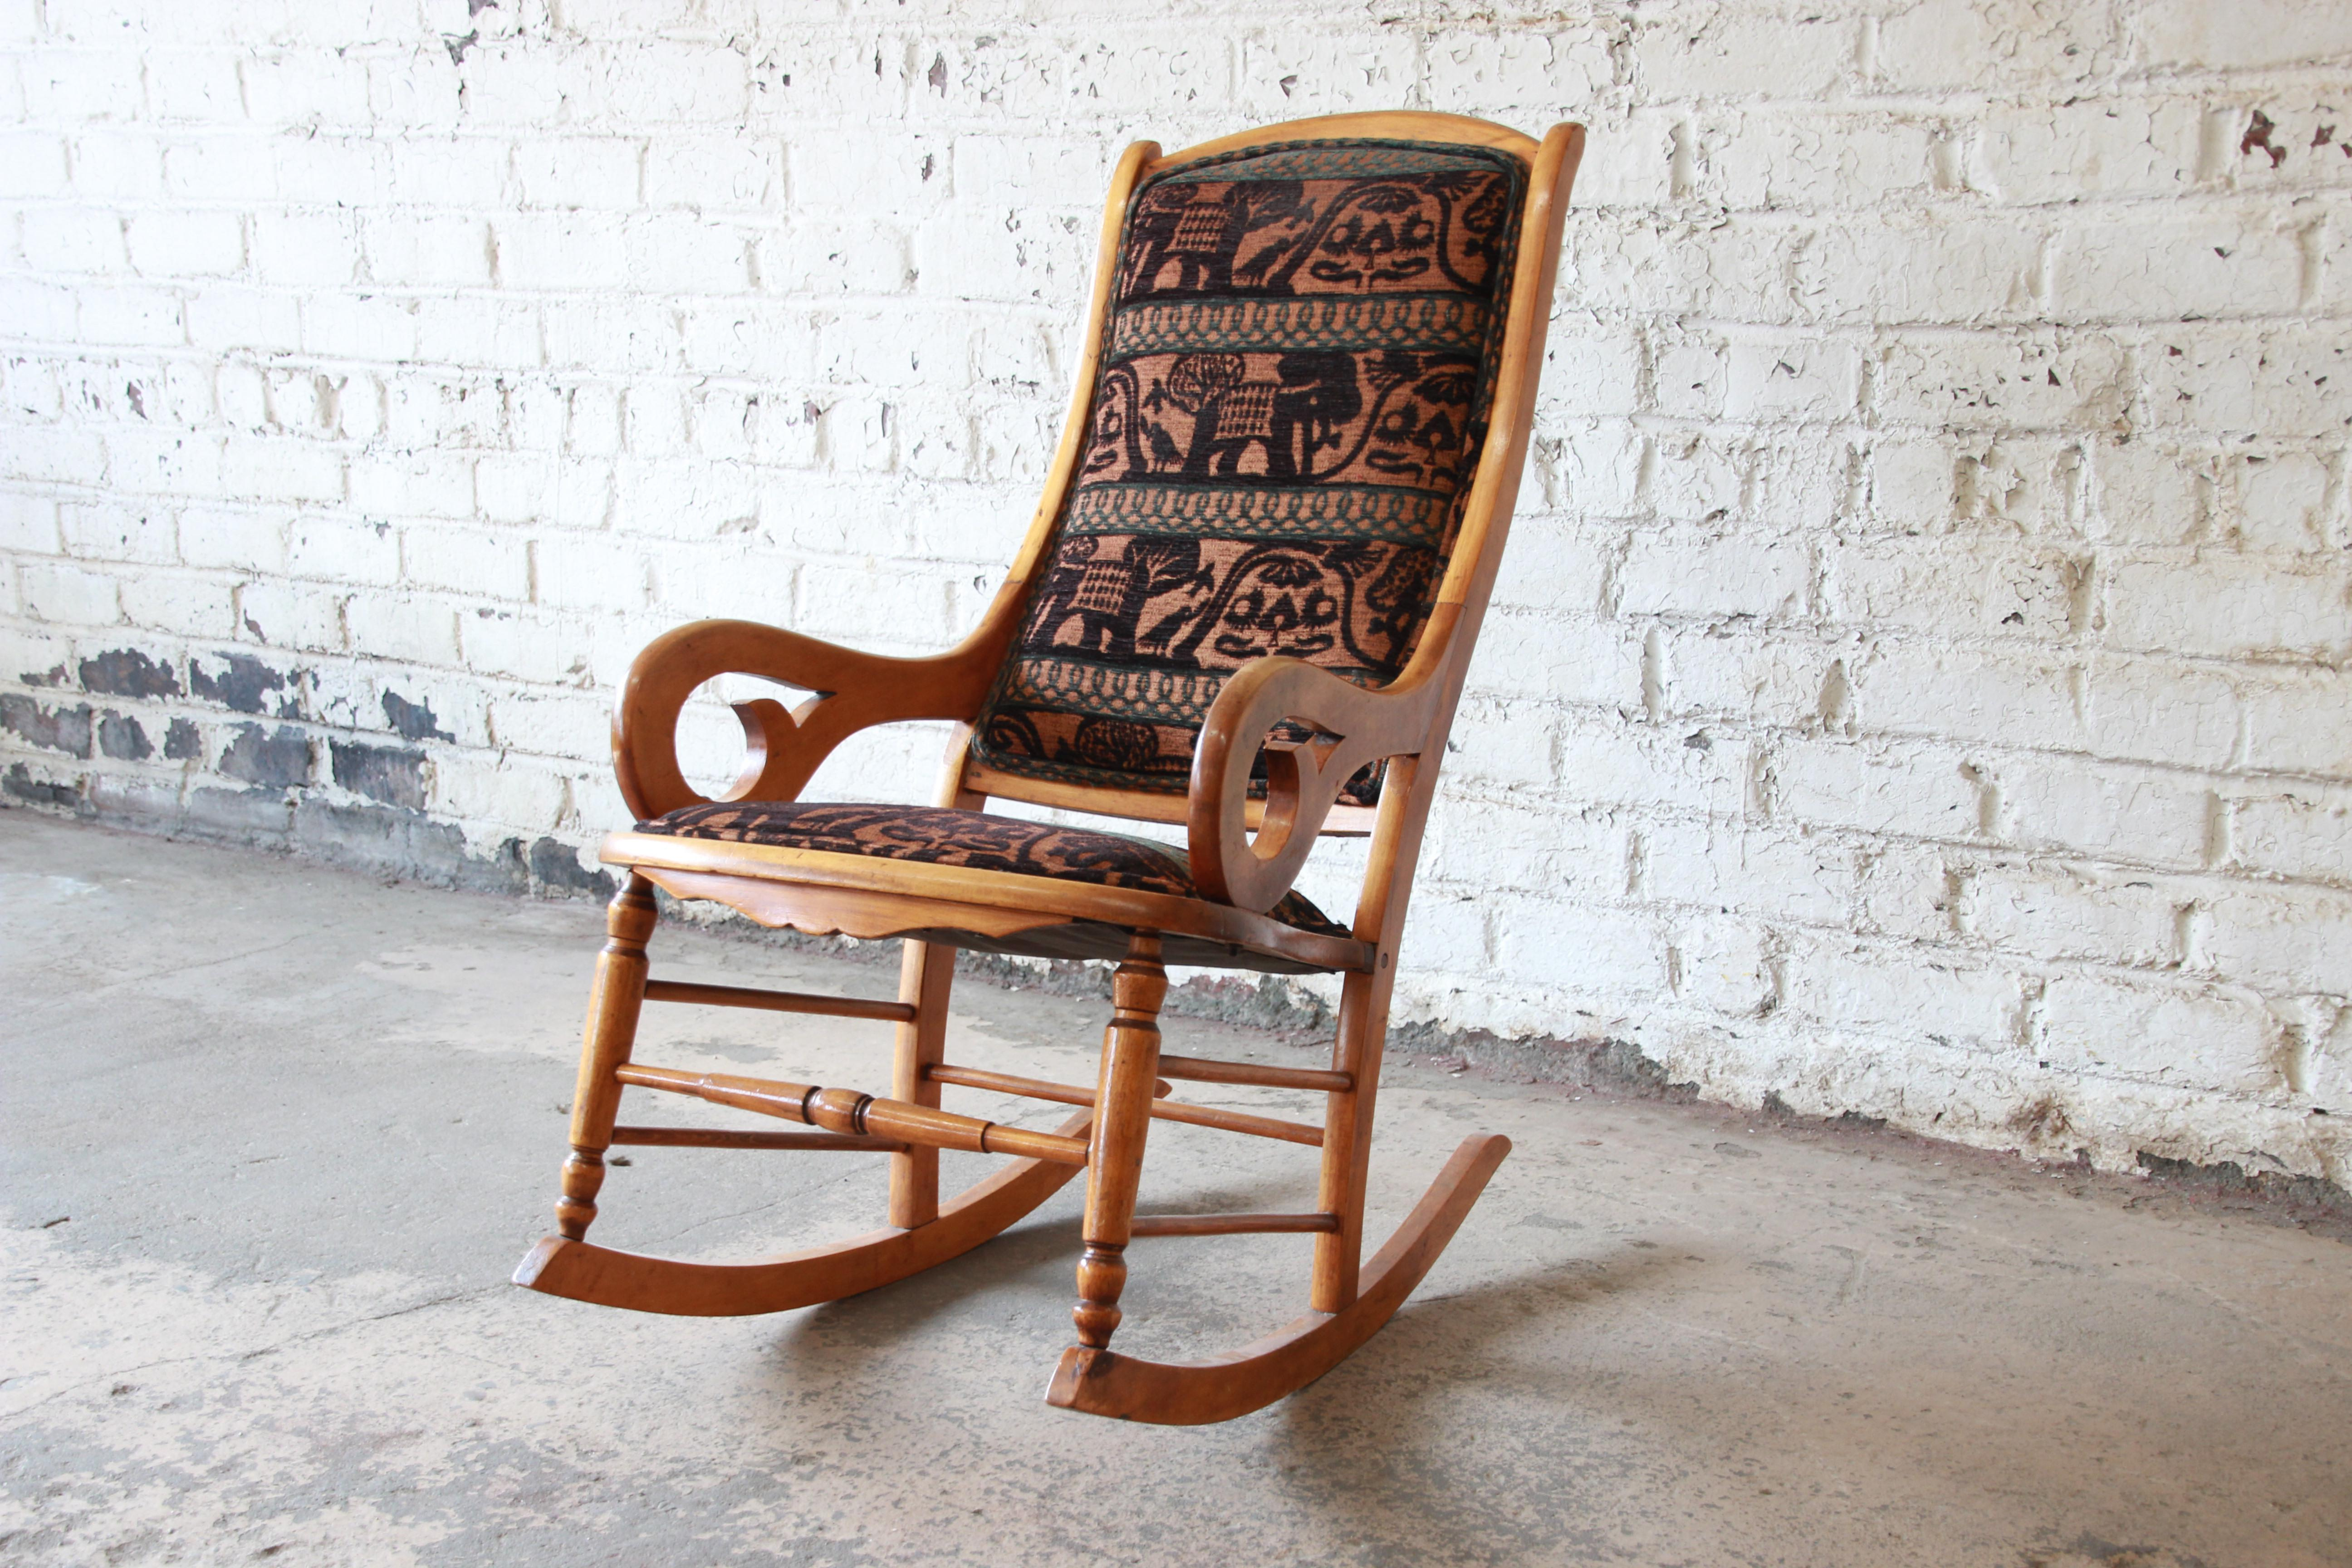 animal rocking chair lowe s canada outdoor chairs antique maple reupholstered in modern motif print for sale image 10 of